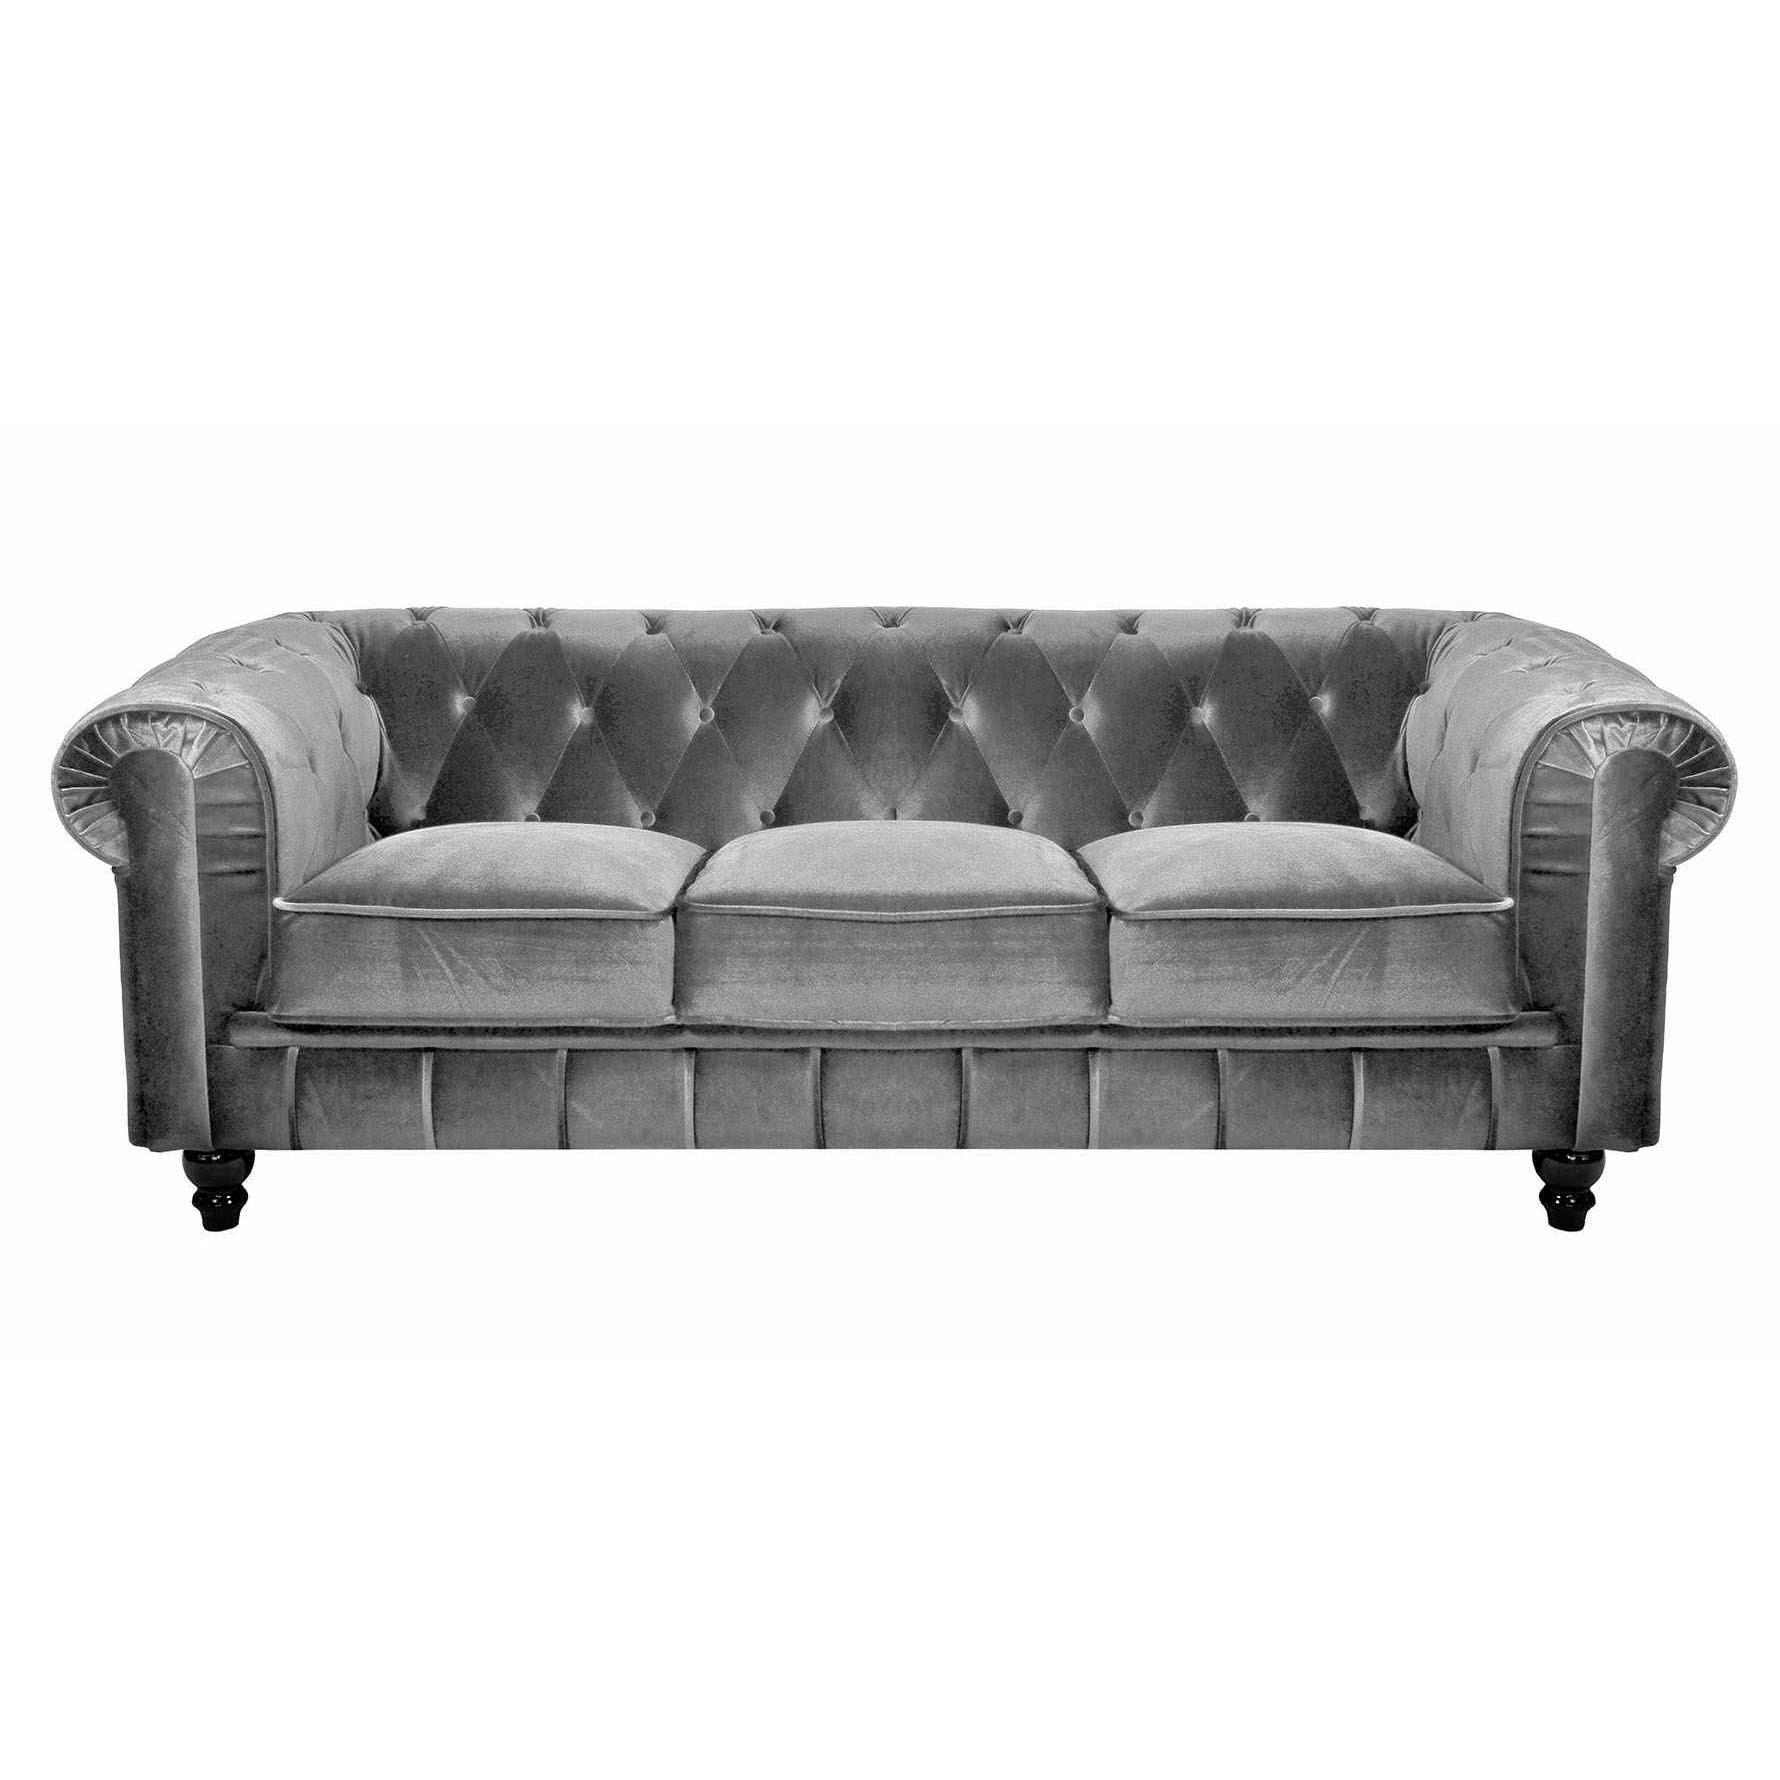 Deco in paris canape 3 places velours gris chesterfield can chester 3p velo - Canape chesterfield velour ...